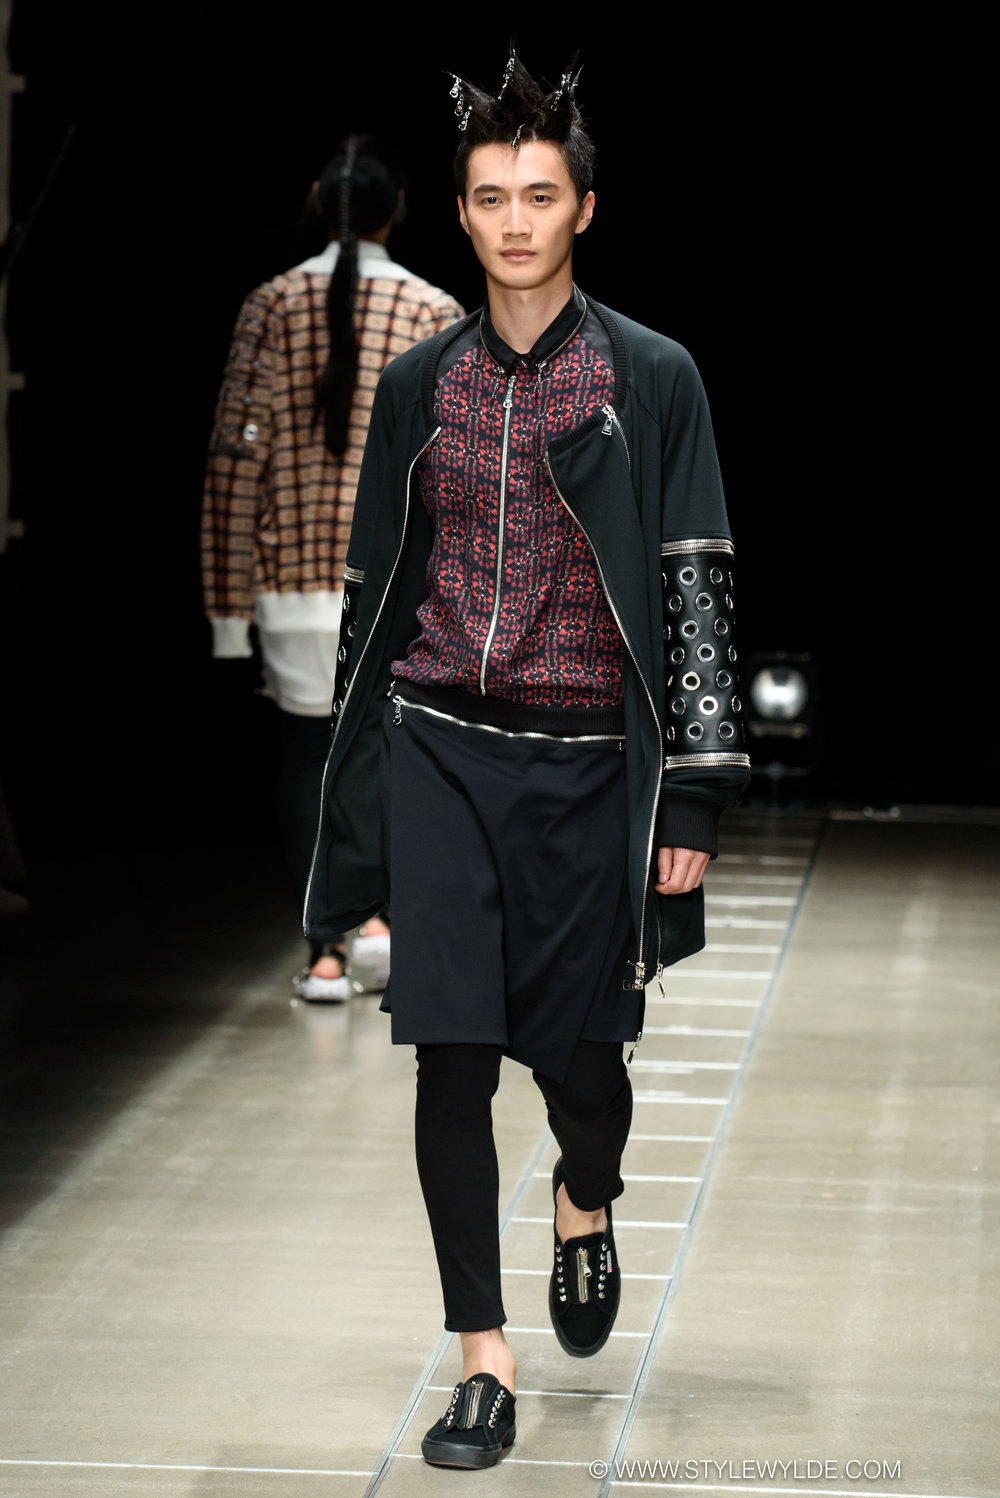 stylewylde_acuod_by_chanu_SS18_runway-21.jpg